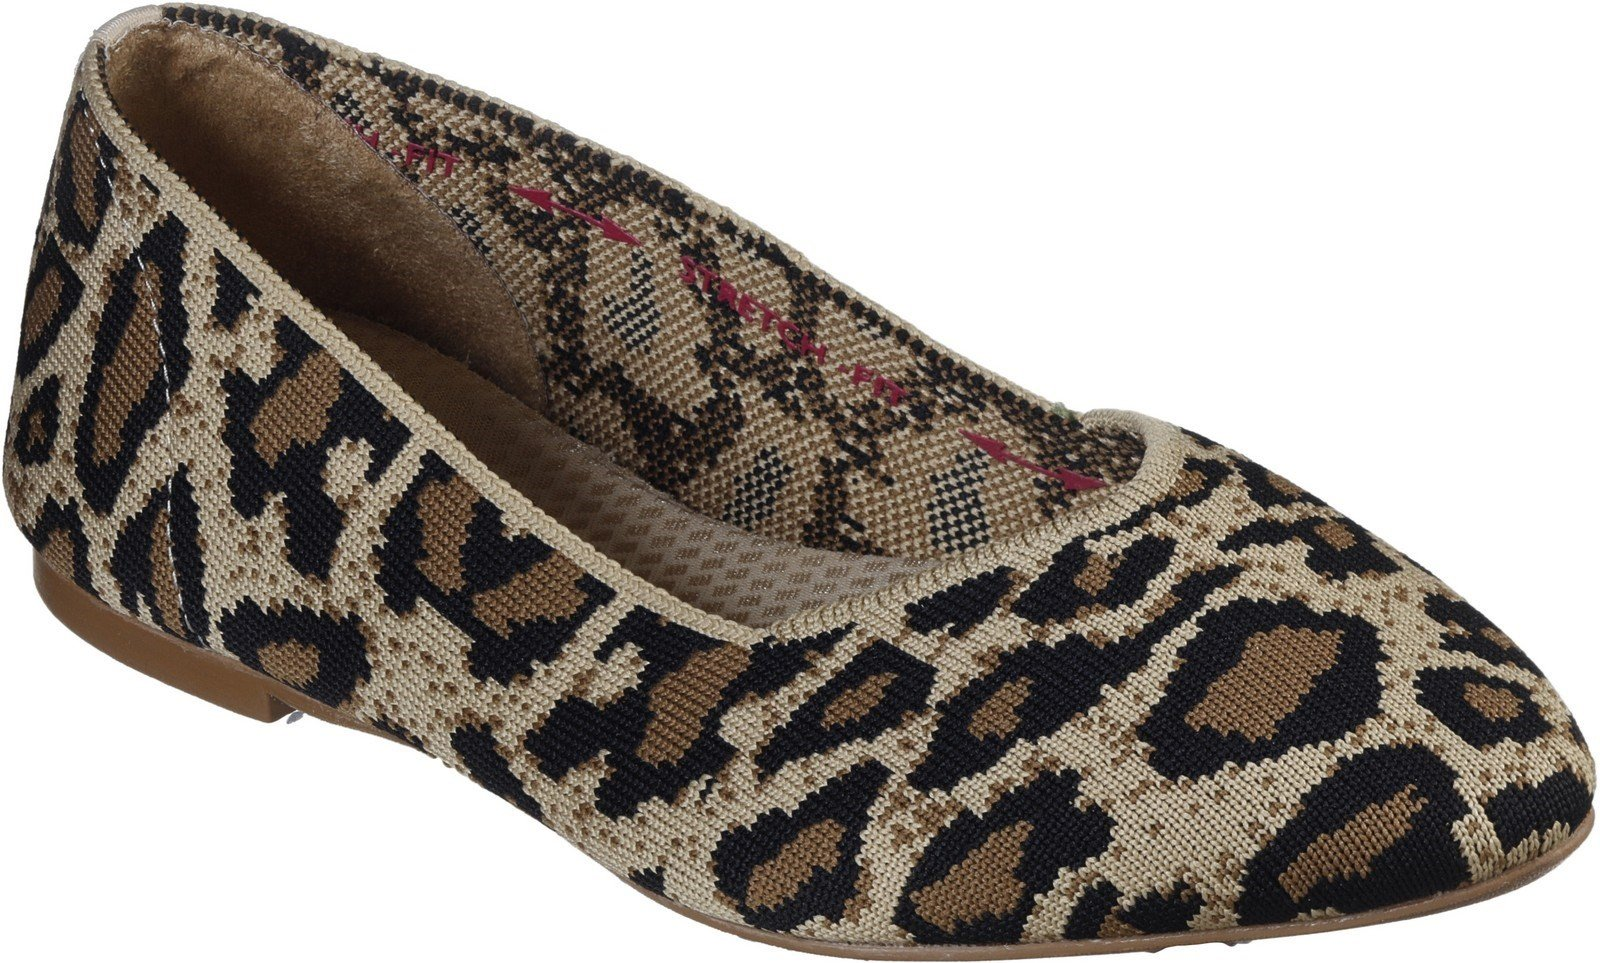 Skechers Women's Cleo Claw-Some Slip On Canvas Shoe Natural 30346 - Natural 3